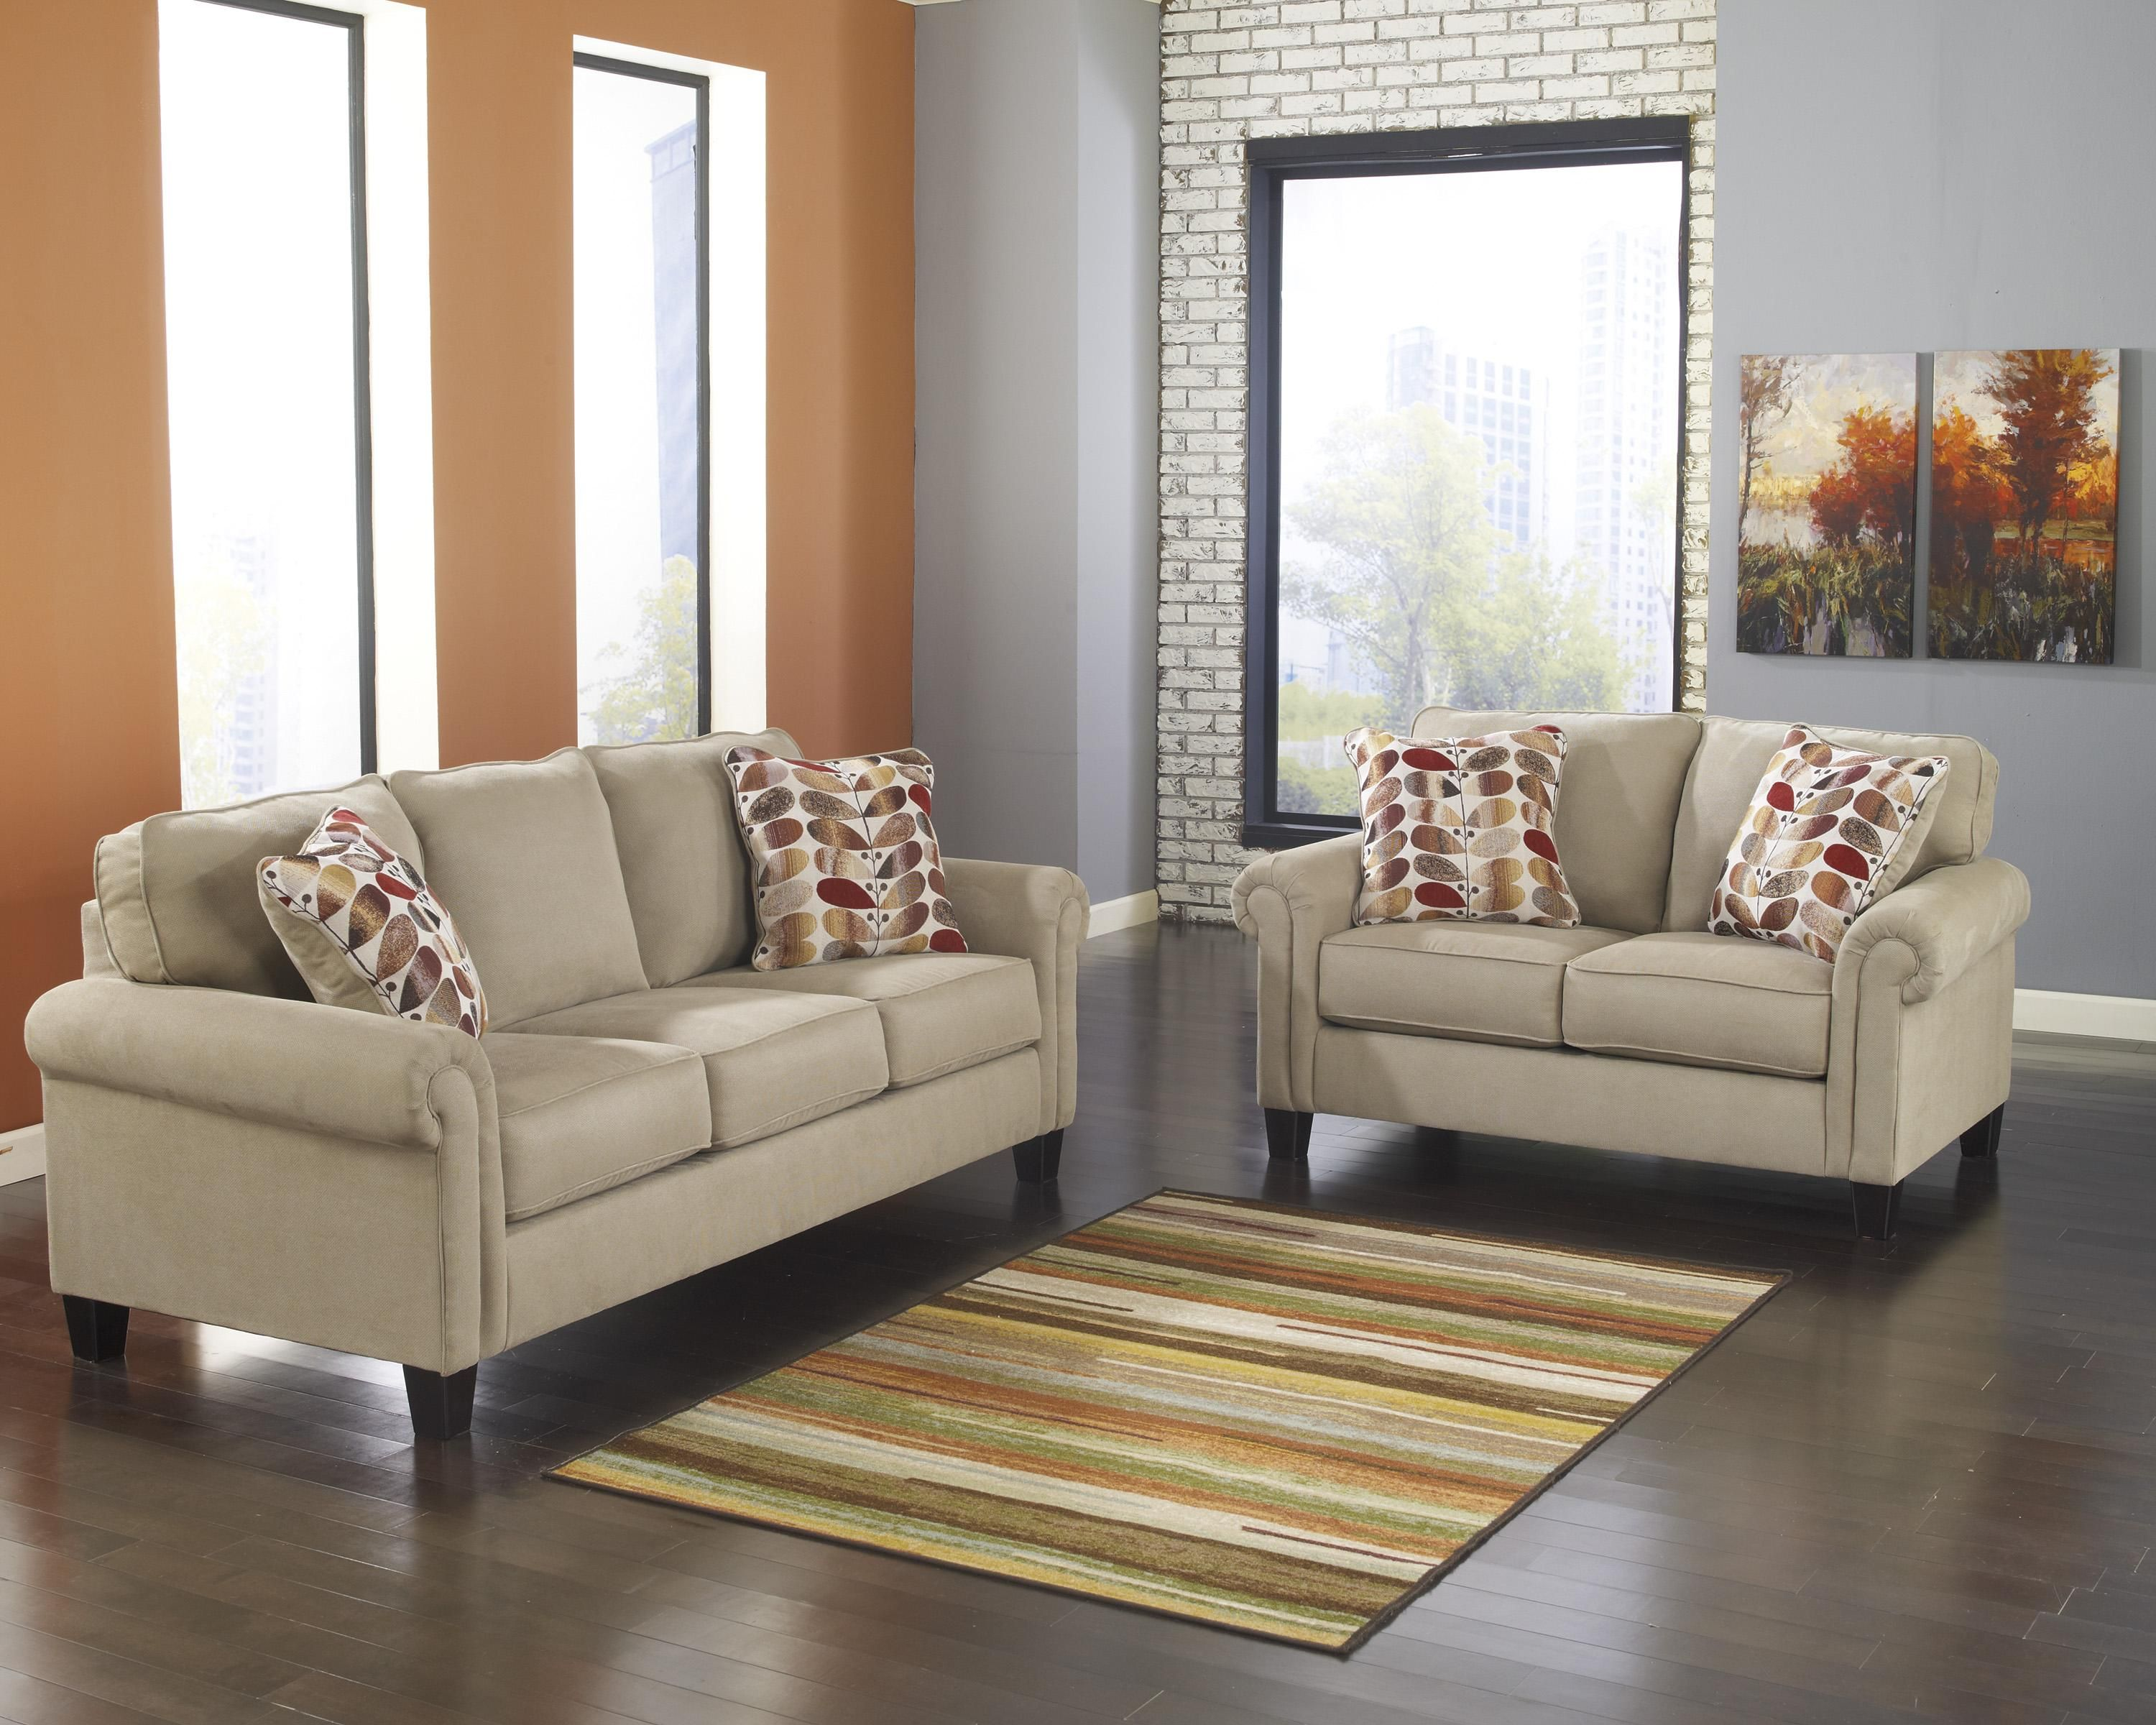 Pilgrim Furniture Room Designs Benchcraft Furniture Loveseat